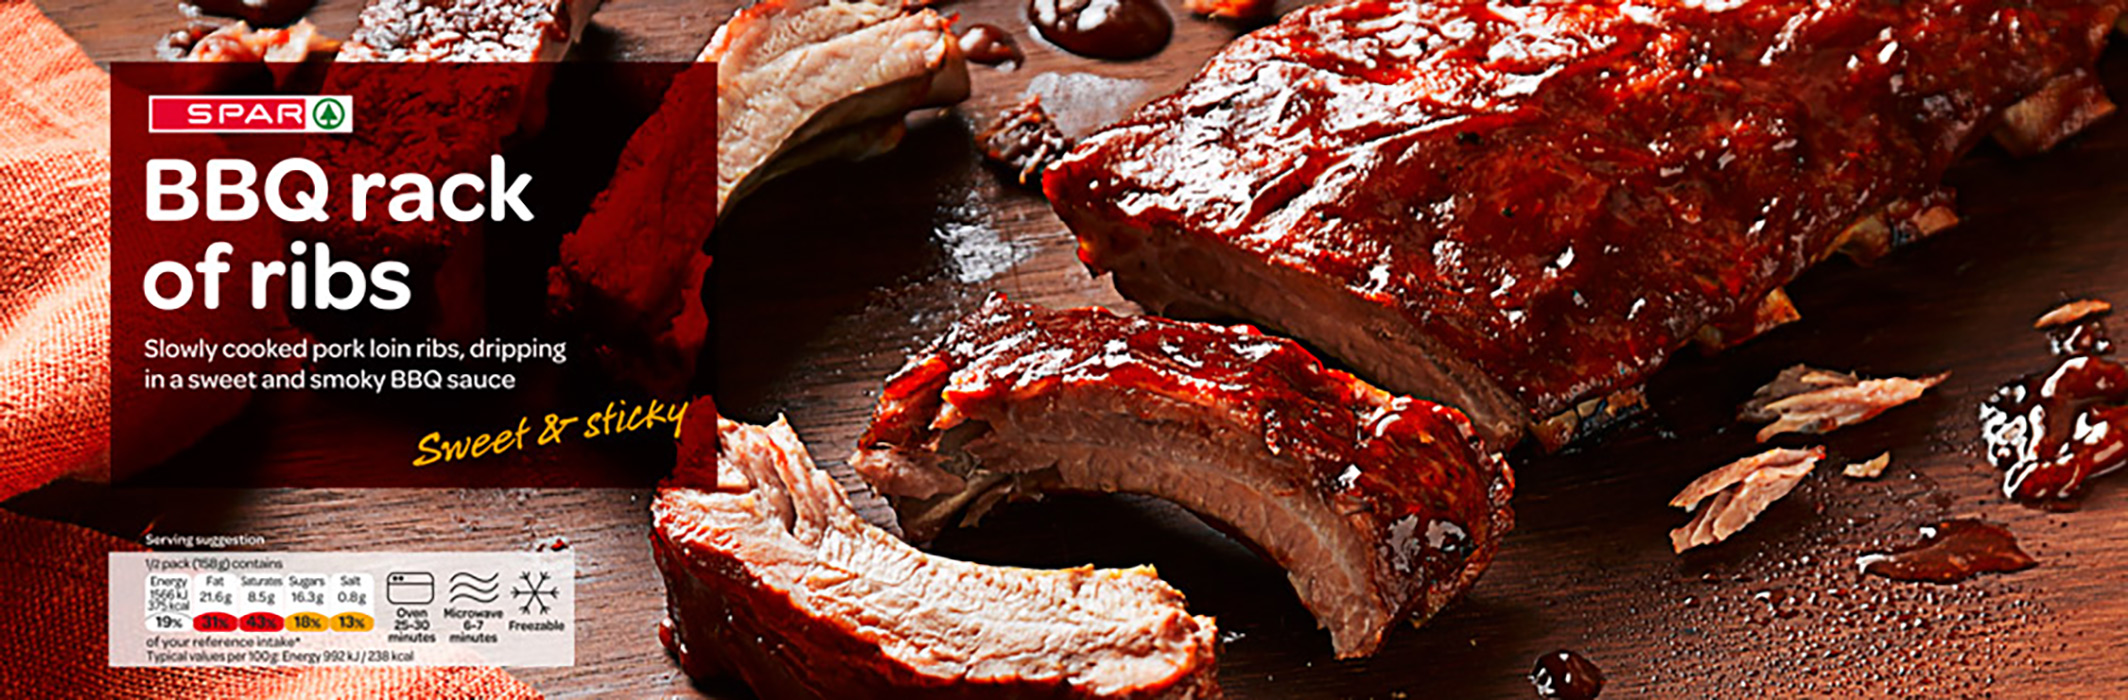 Spar-spare_ribs_by_London_food_photographer_michael_michaels